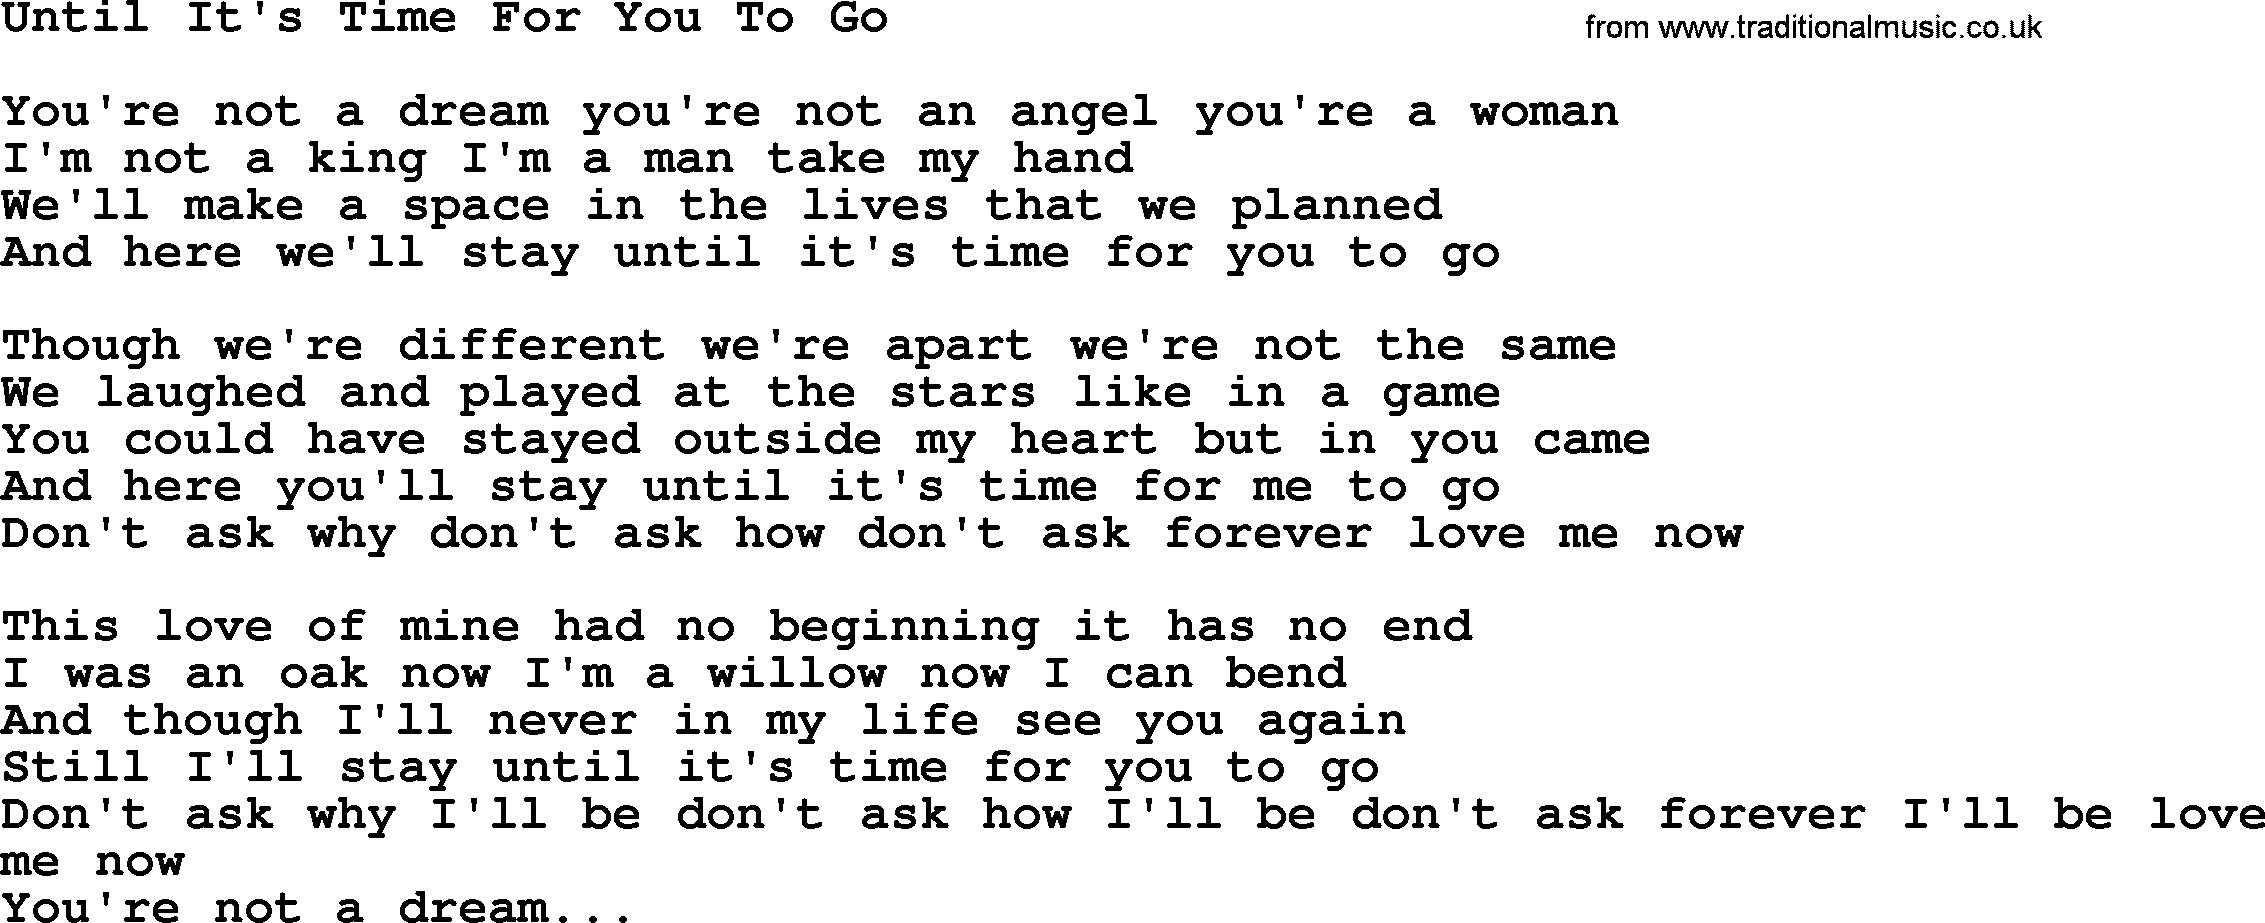 Willie Nelson song: Until It's Time For You To Go, lyrics